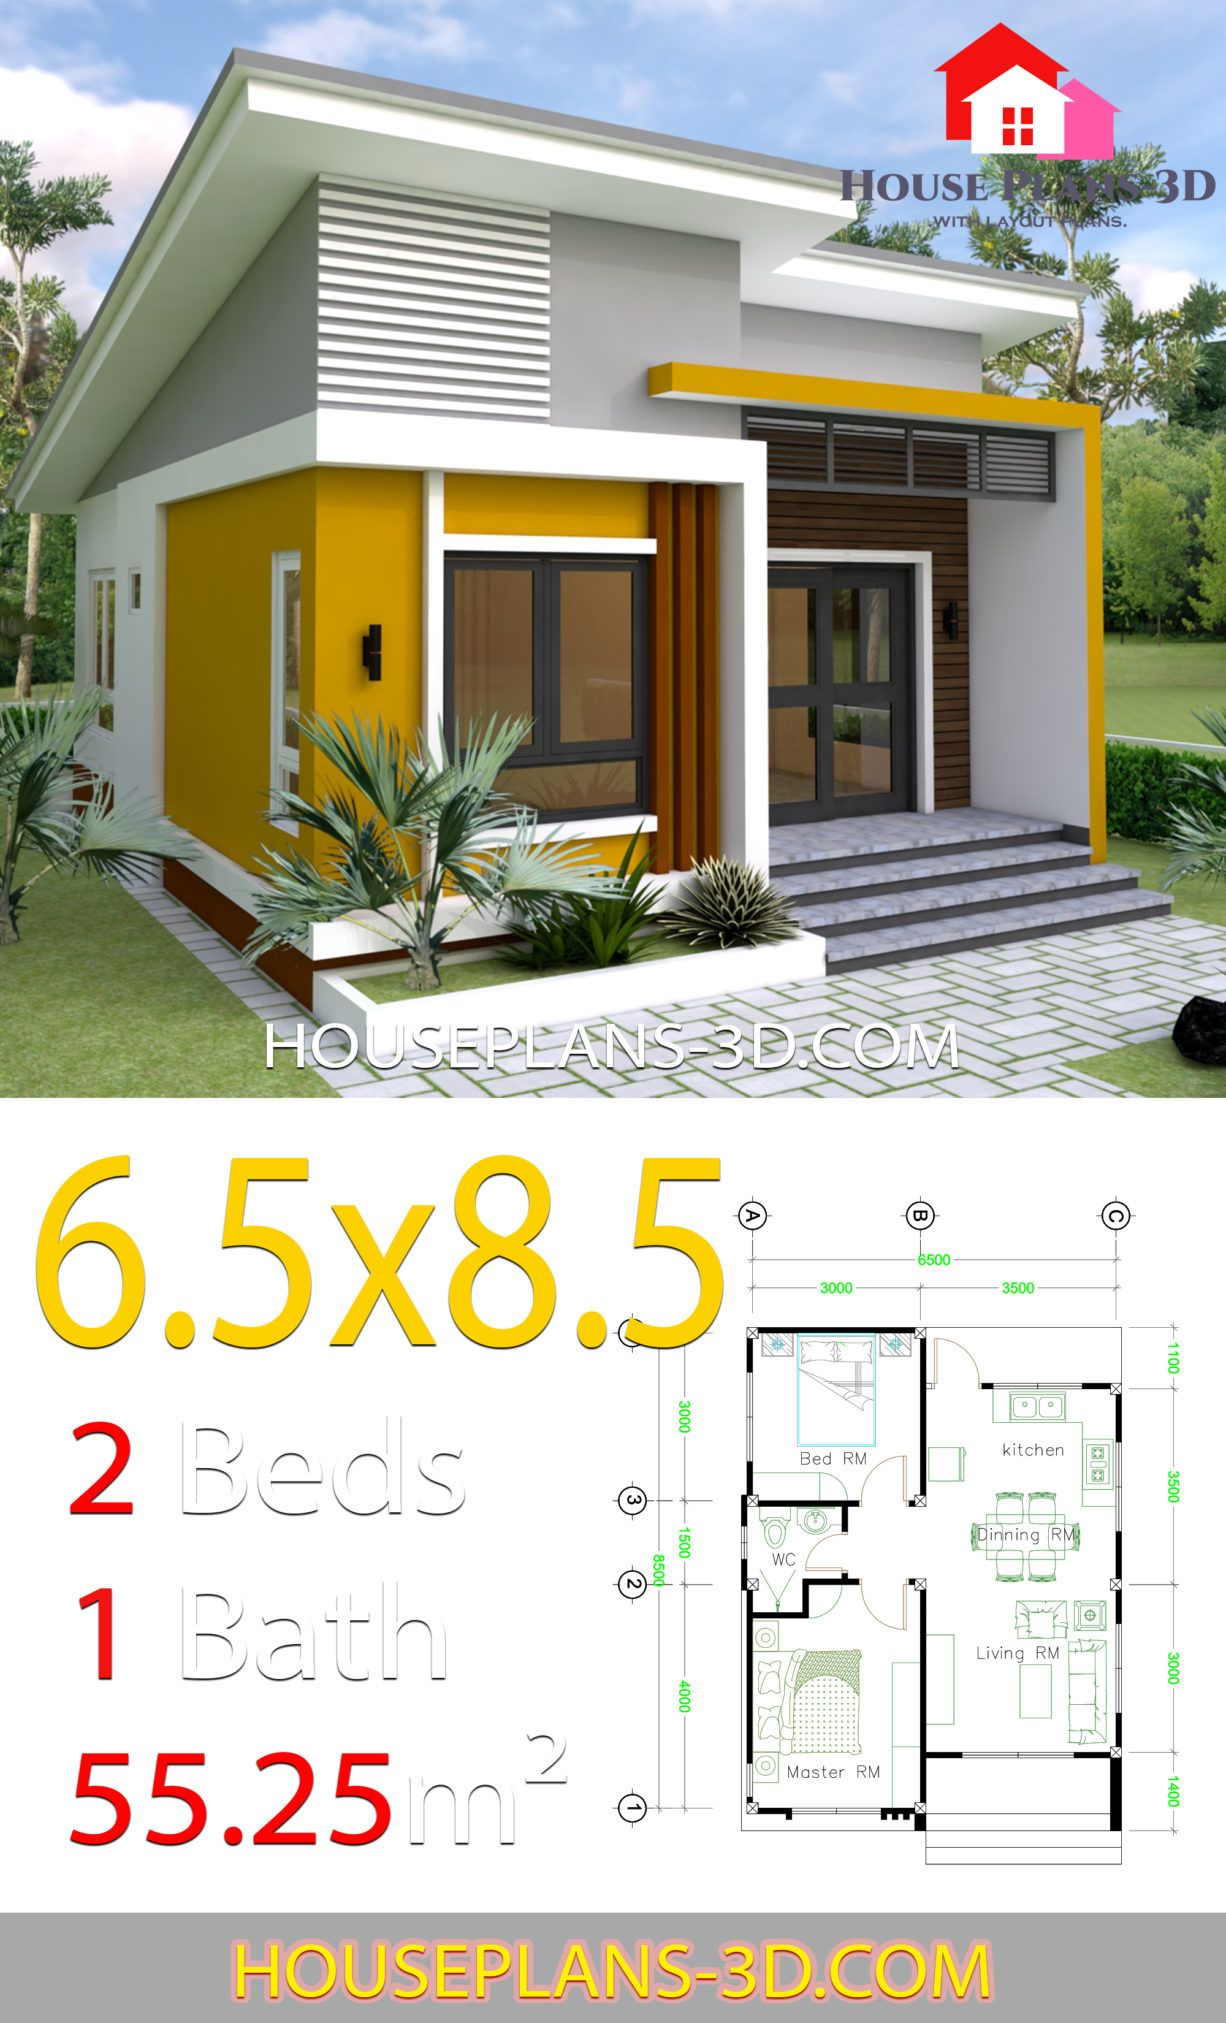 Small House Design 6 5x8 5 With 2 Bedrooms House Plans 3d 2 Bedroom House Design Simple House Design Small House Design Plans